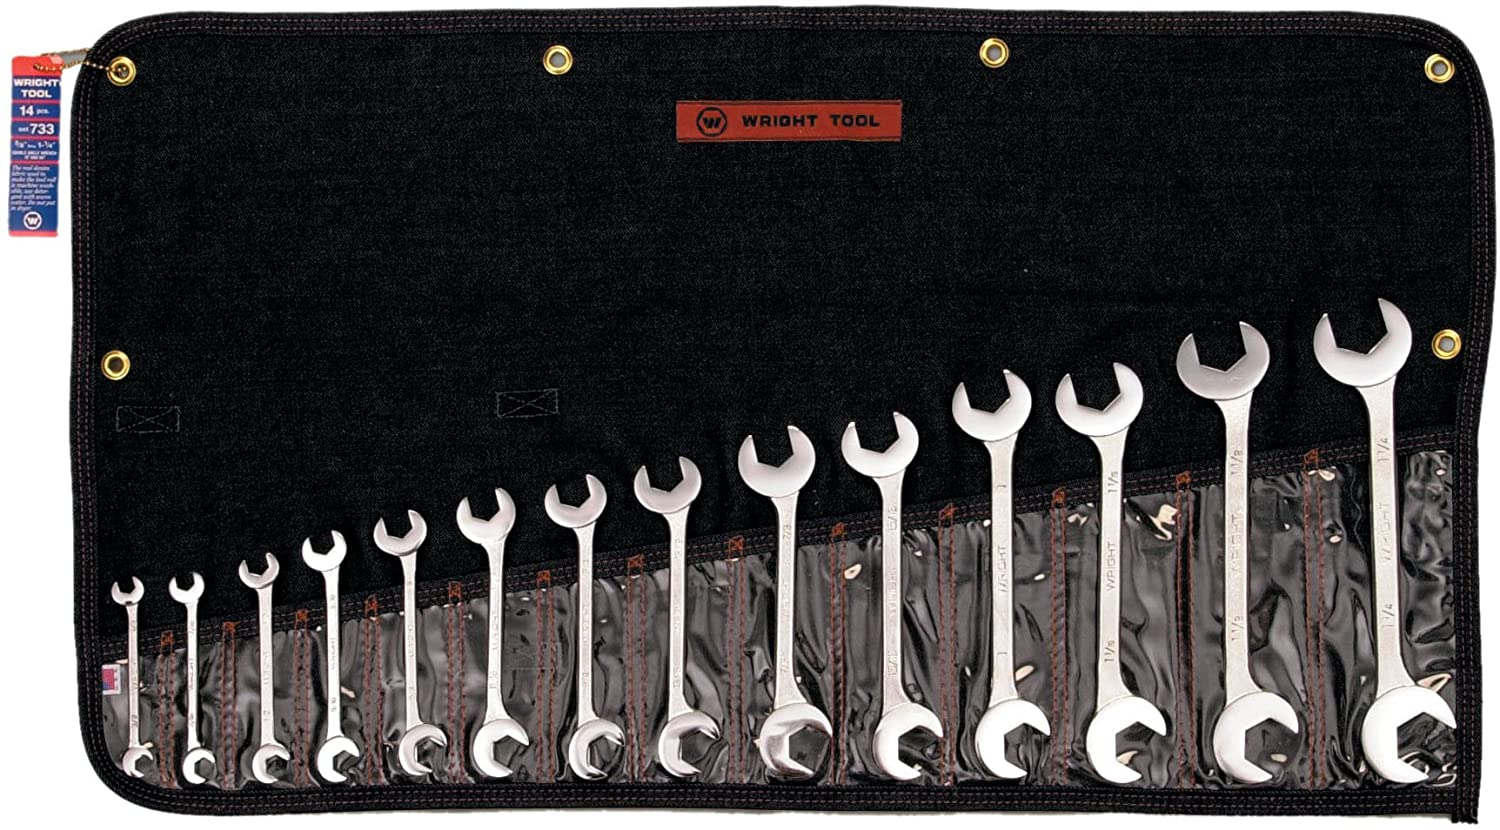 SET 733 14PC OPEN END WRENCH 14 Pc. Open End, Double angle